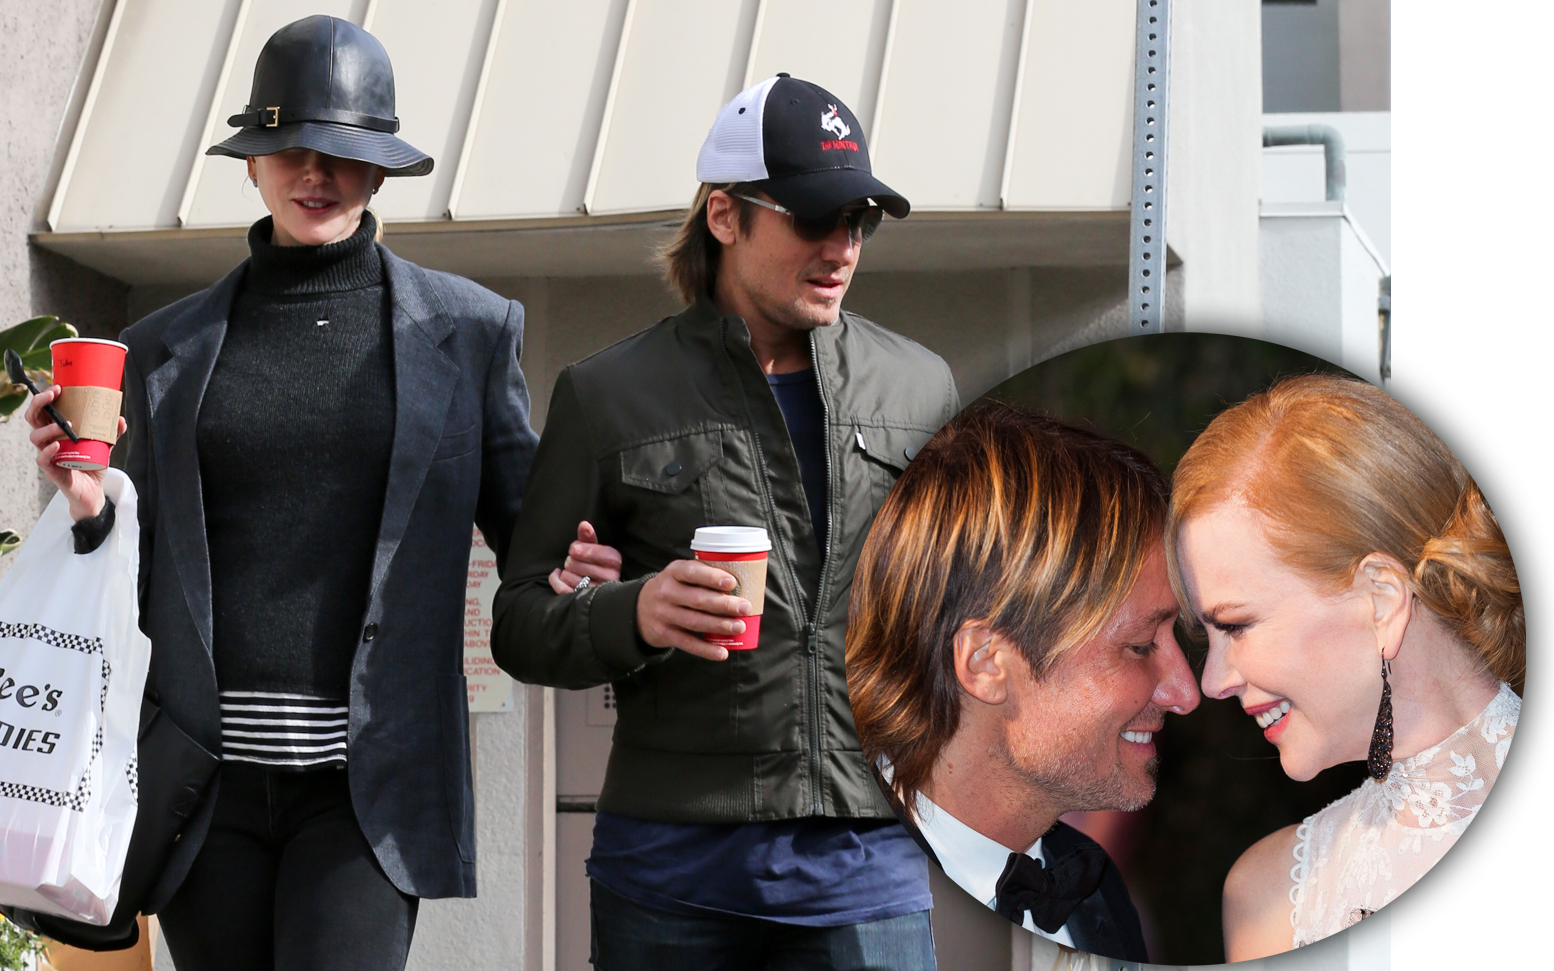 EXCLUSIVE: ** PREMIUM EXCLUSIVE RATES APPLY** Nicole Kidman and Keith Urban spend Christmas Eve at the mall with their daughters in Sherman Oaks, California